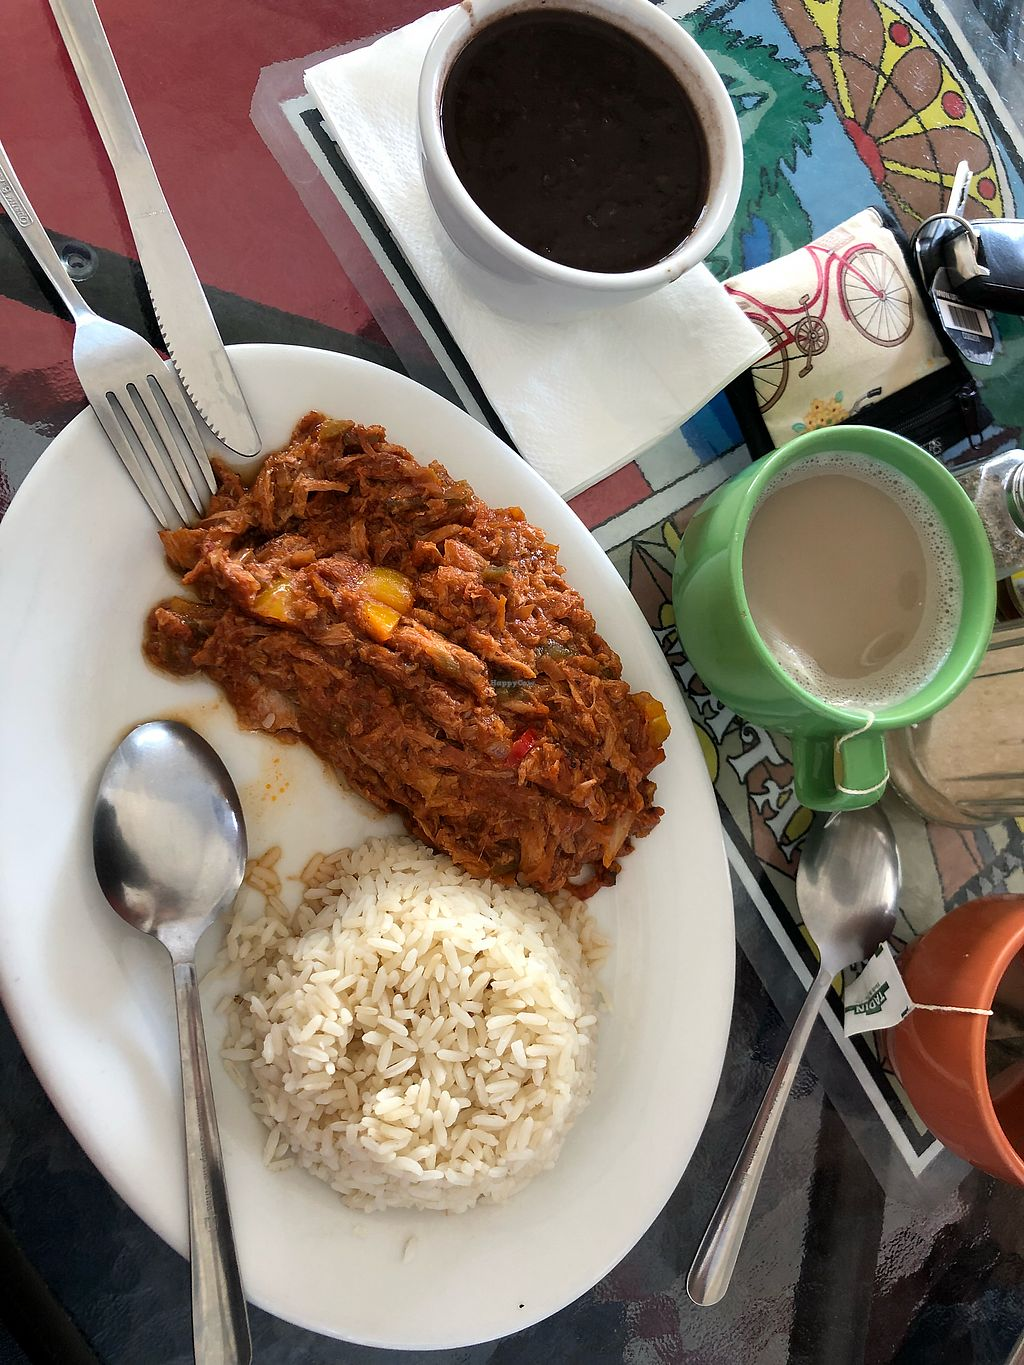 """Photo of Equelecua Cuban Cafe  by <a href=""""/members/profile/xoines"""">xoines</a> <br/>I think this one was shredded beef and it was served with rice and beans. I absolutely loved it! It was really flavorful and a bit sweet because of the yellow bell peppers. I'm a good eater but the plate will make you full haha. Also pictured in the green cup is a tropical tea latte with pineapple flavor. Trust me you HAVE to try it! I ordered it with almond milk. No sweetener added. I'm obsessed with this drink now!! <br/> February 6, 2018  - <a href='/contact/abuse/image/59617/355825'>Report</a>"""